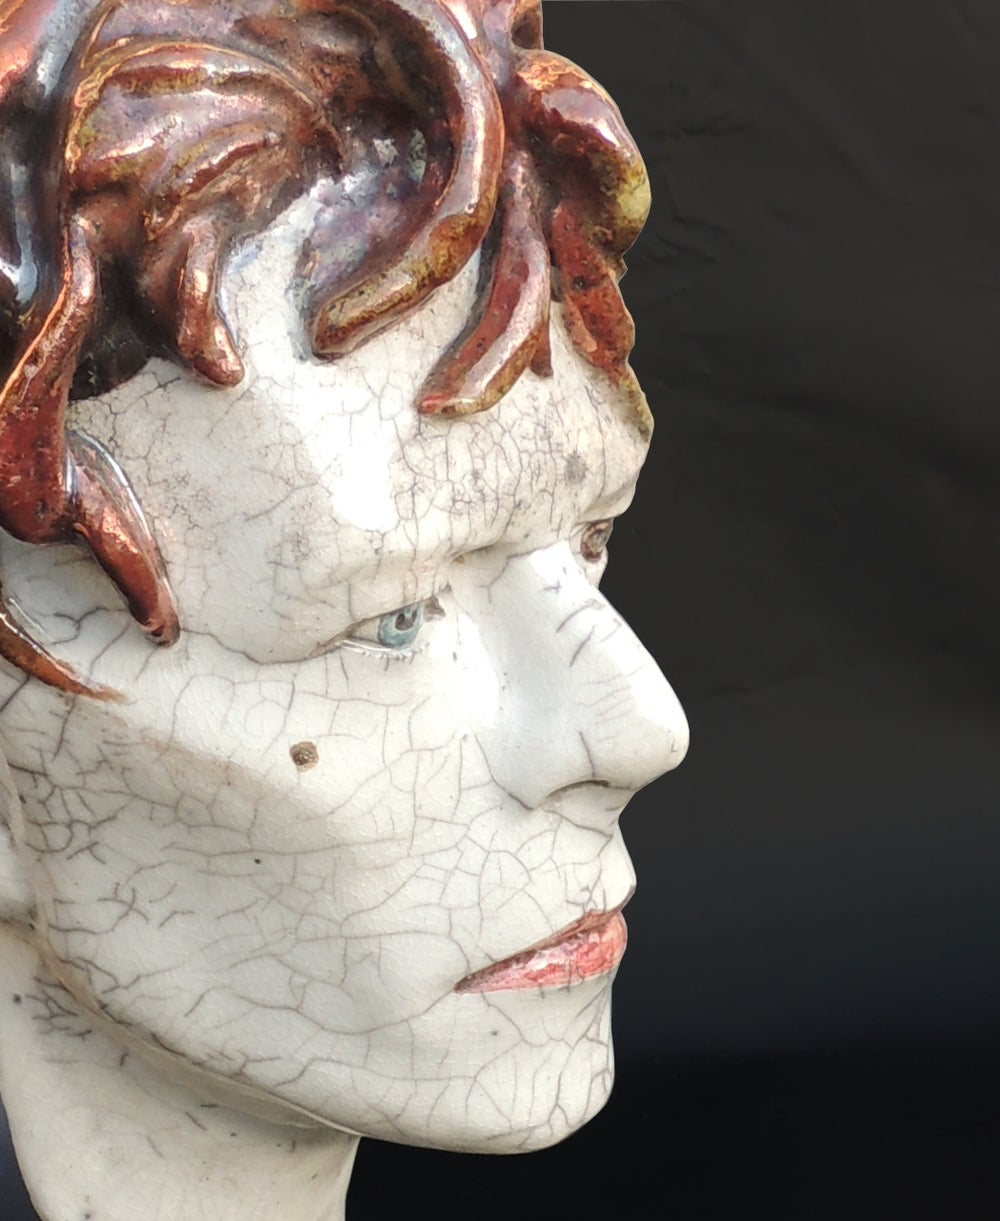 'It's No Game' Ceramic Face Sculpture